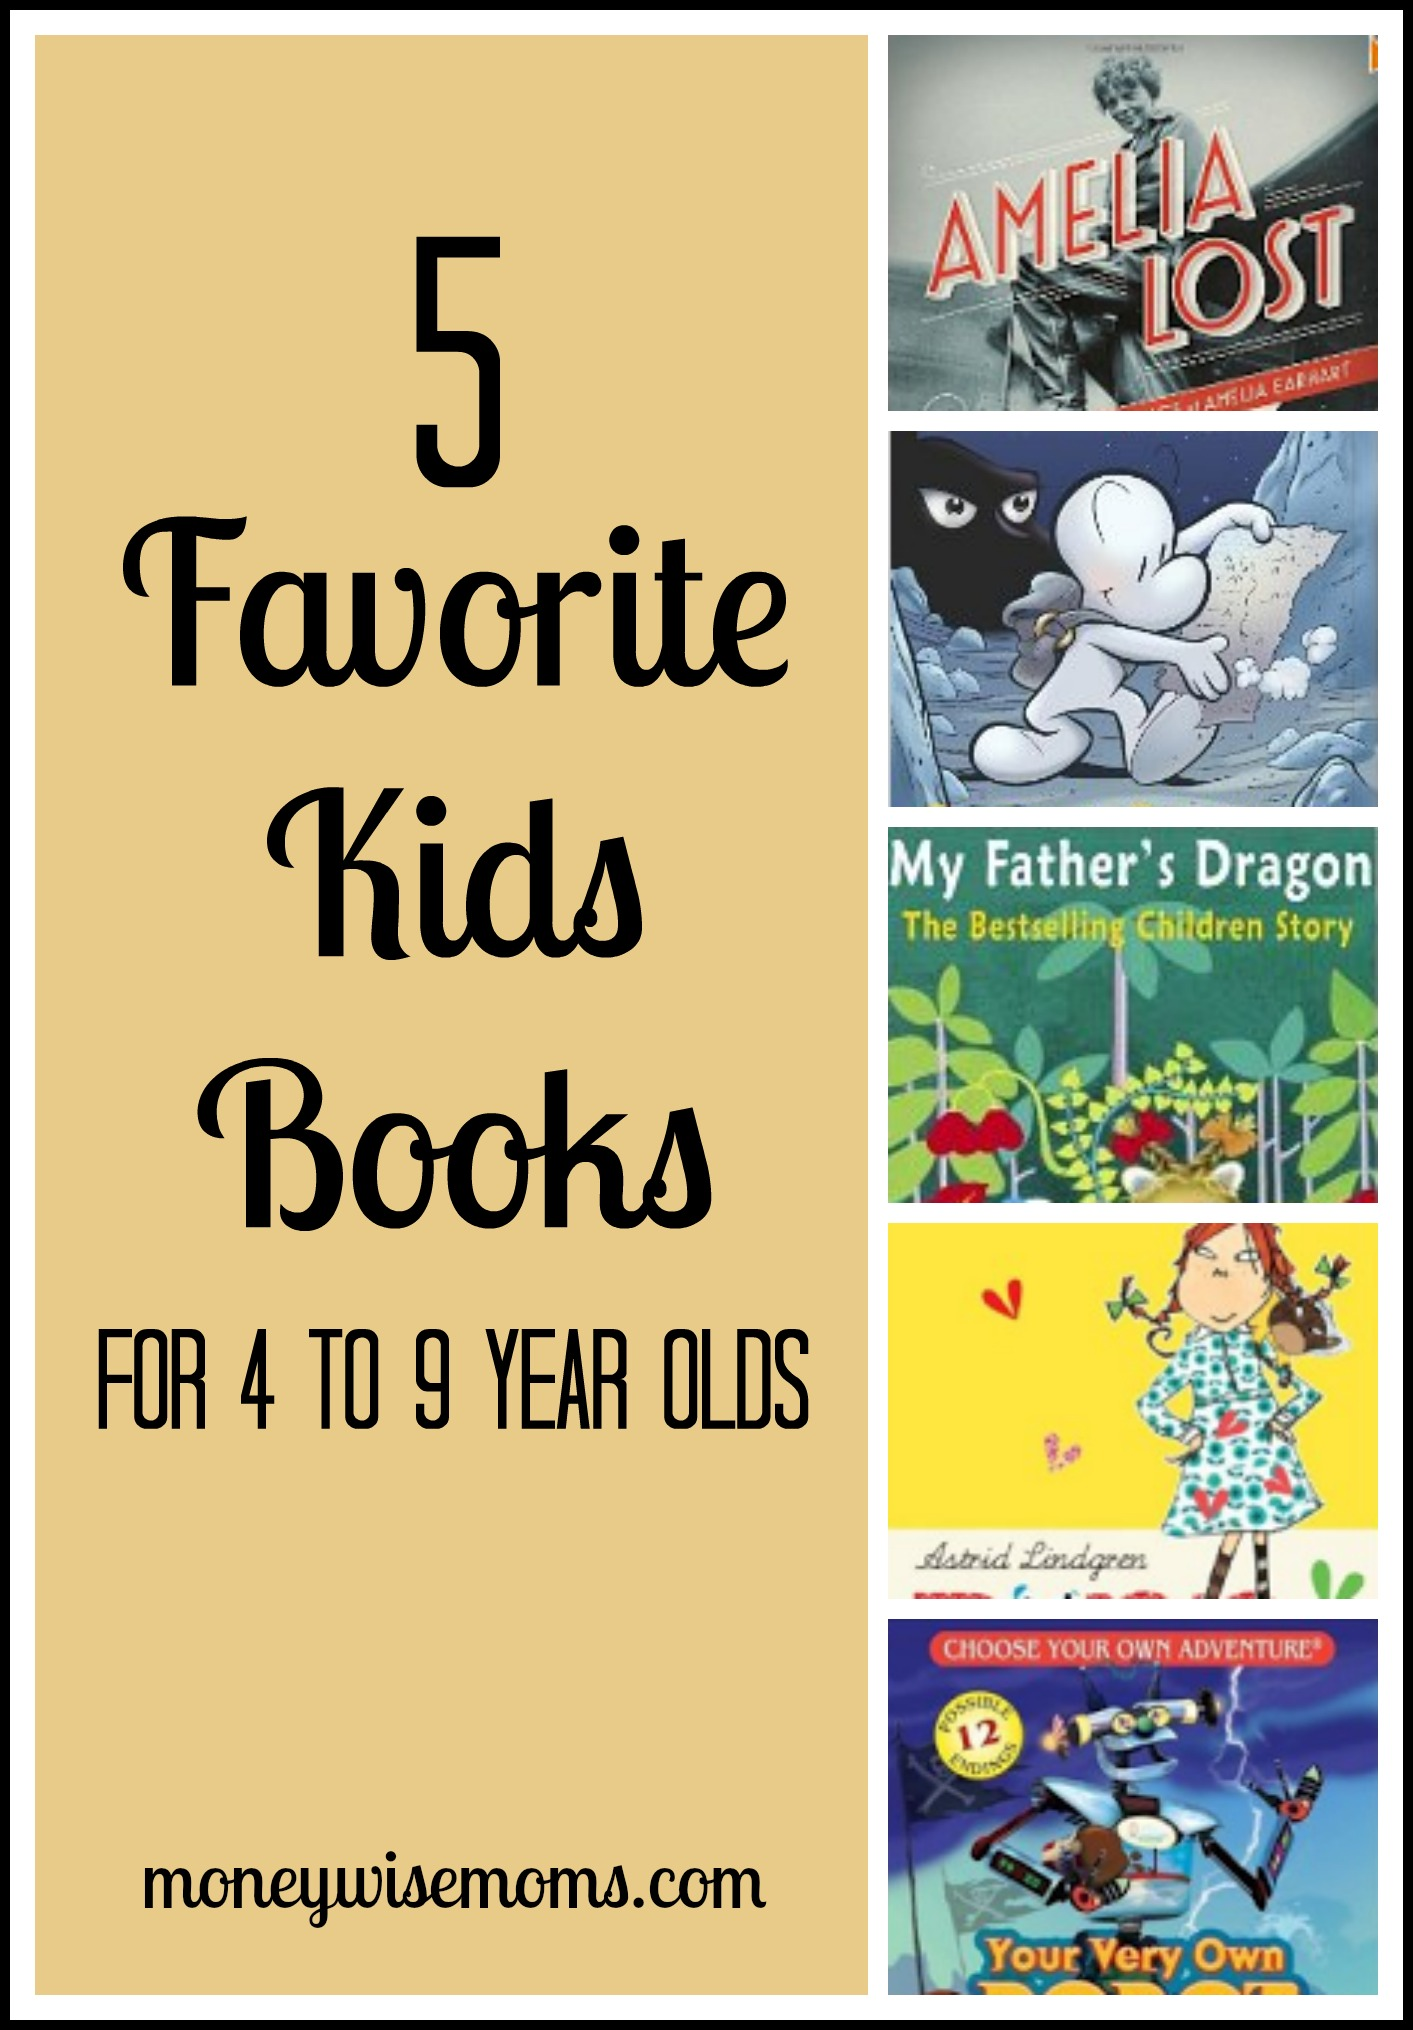 5 Favorite Kids Books for 4-9 year olds - Moneywise Moms